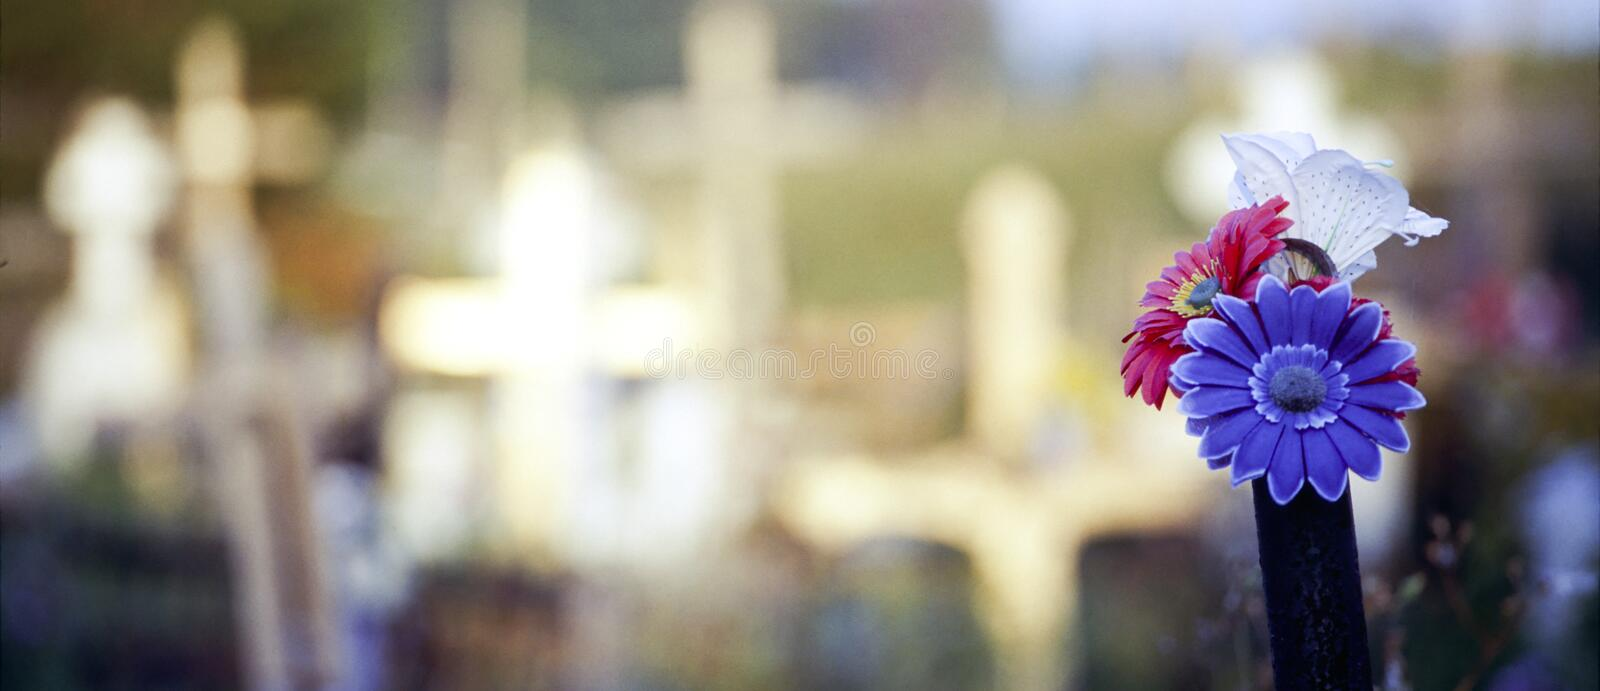 Cemetery Crosses & Flowers royalty free stock image